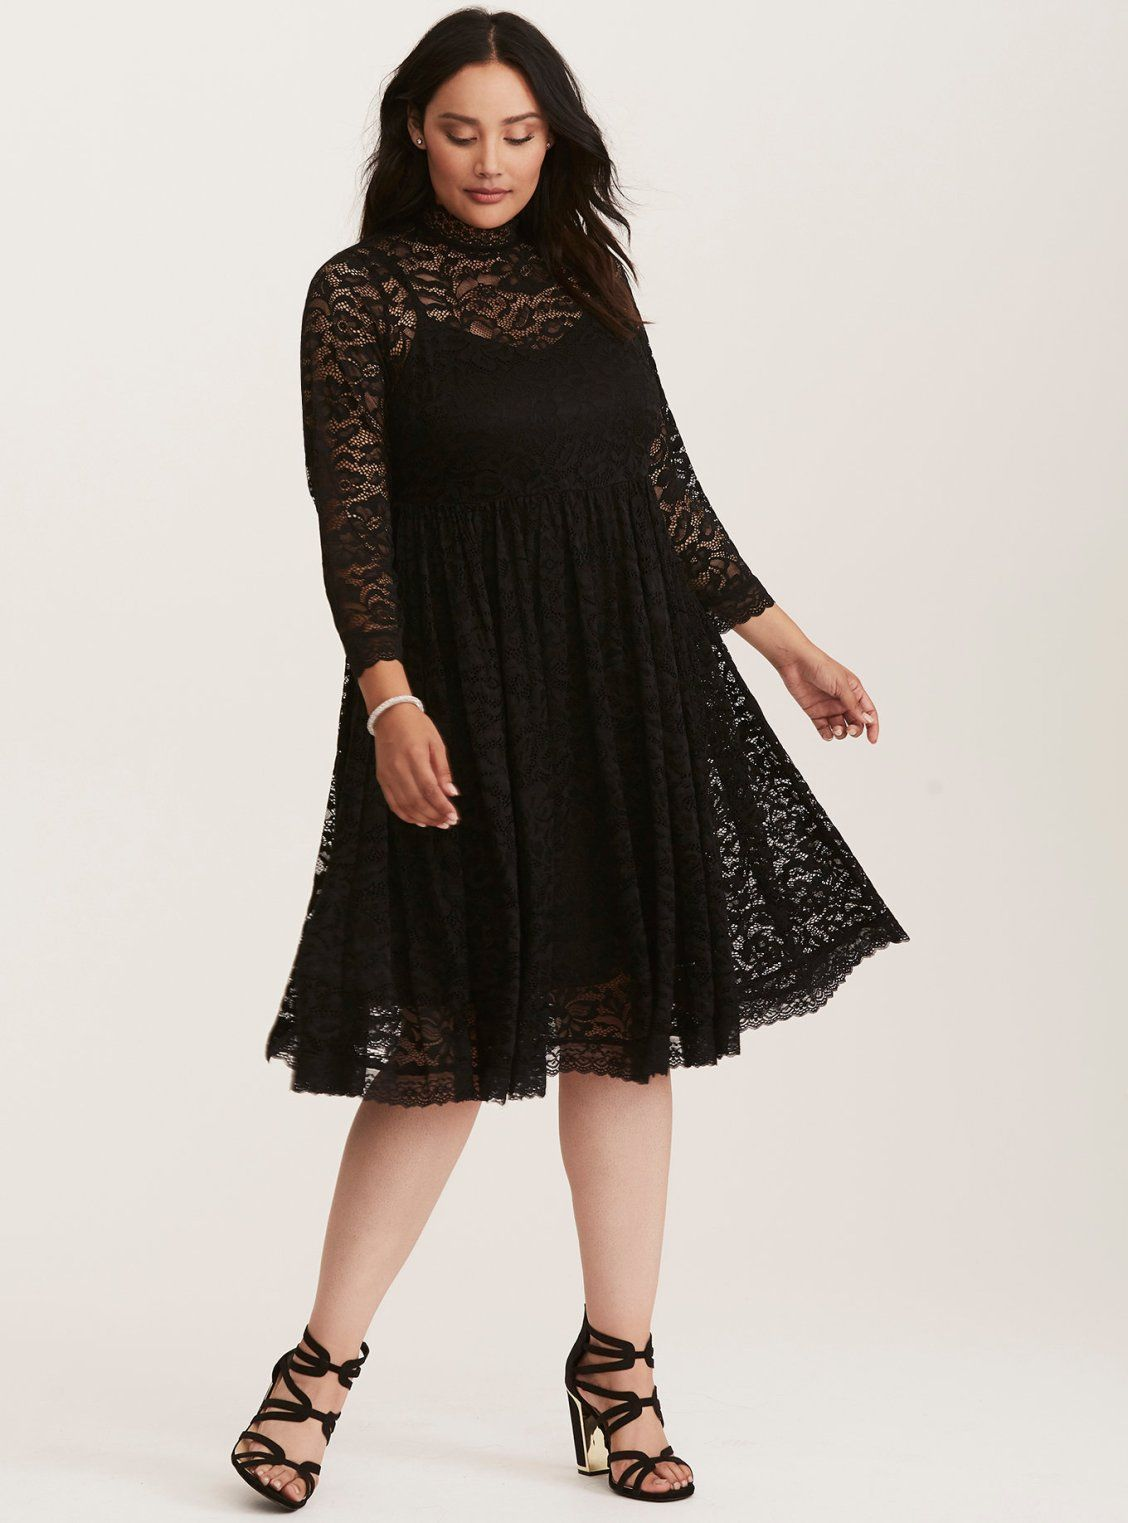 Black Lace High Neck Midi Dress  Torrid  Plus Size  Holiday